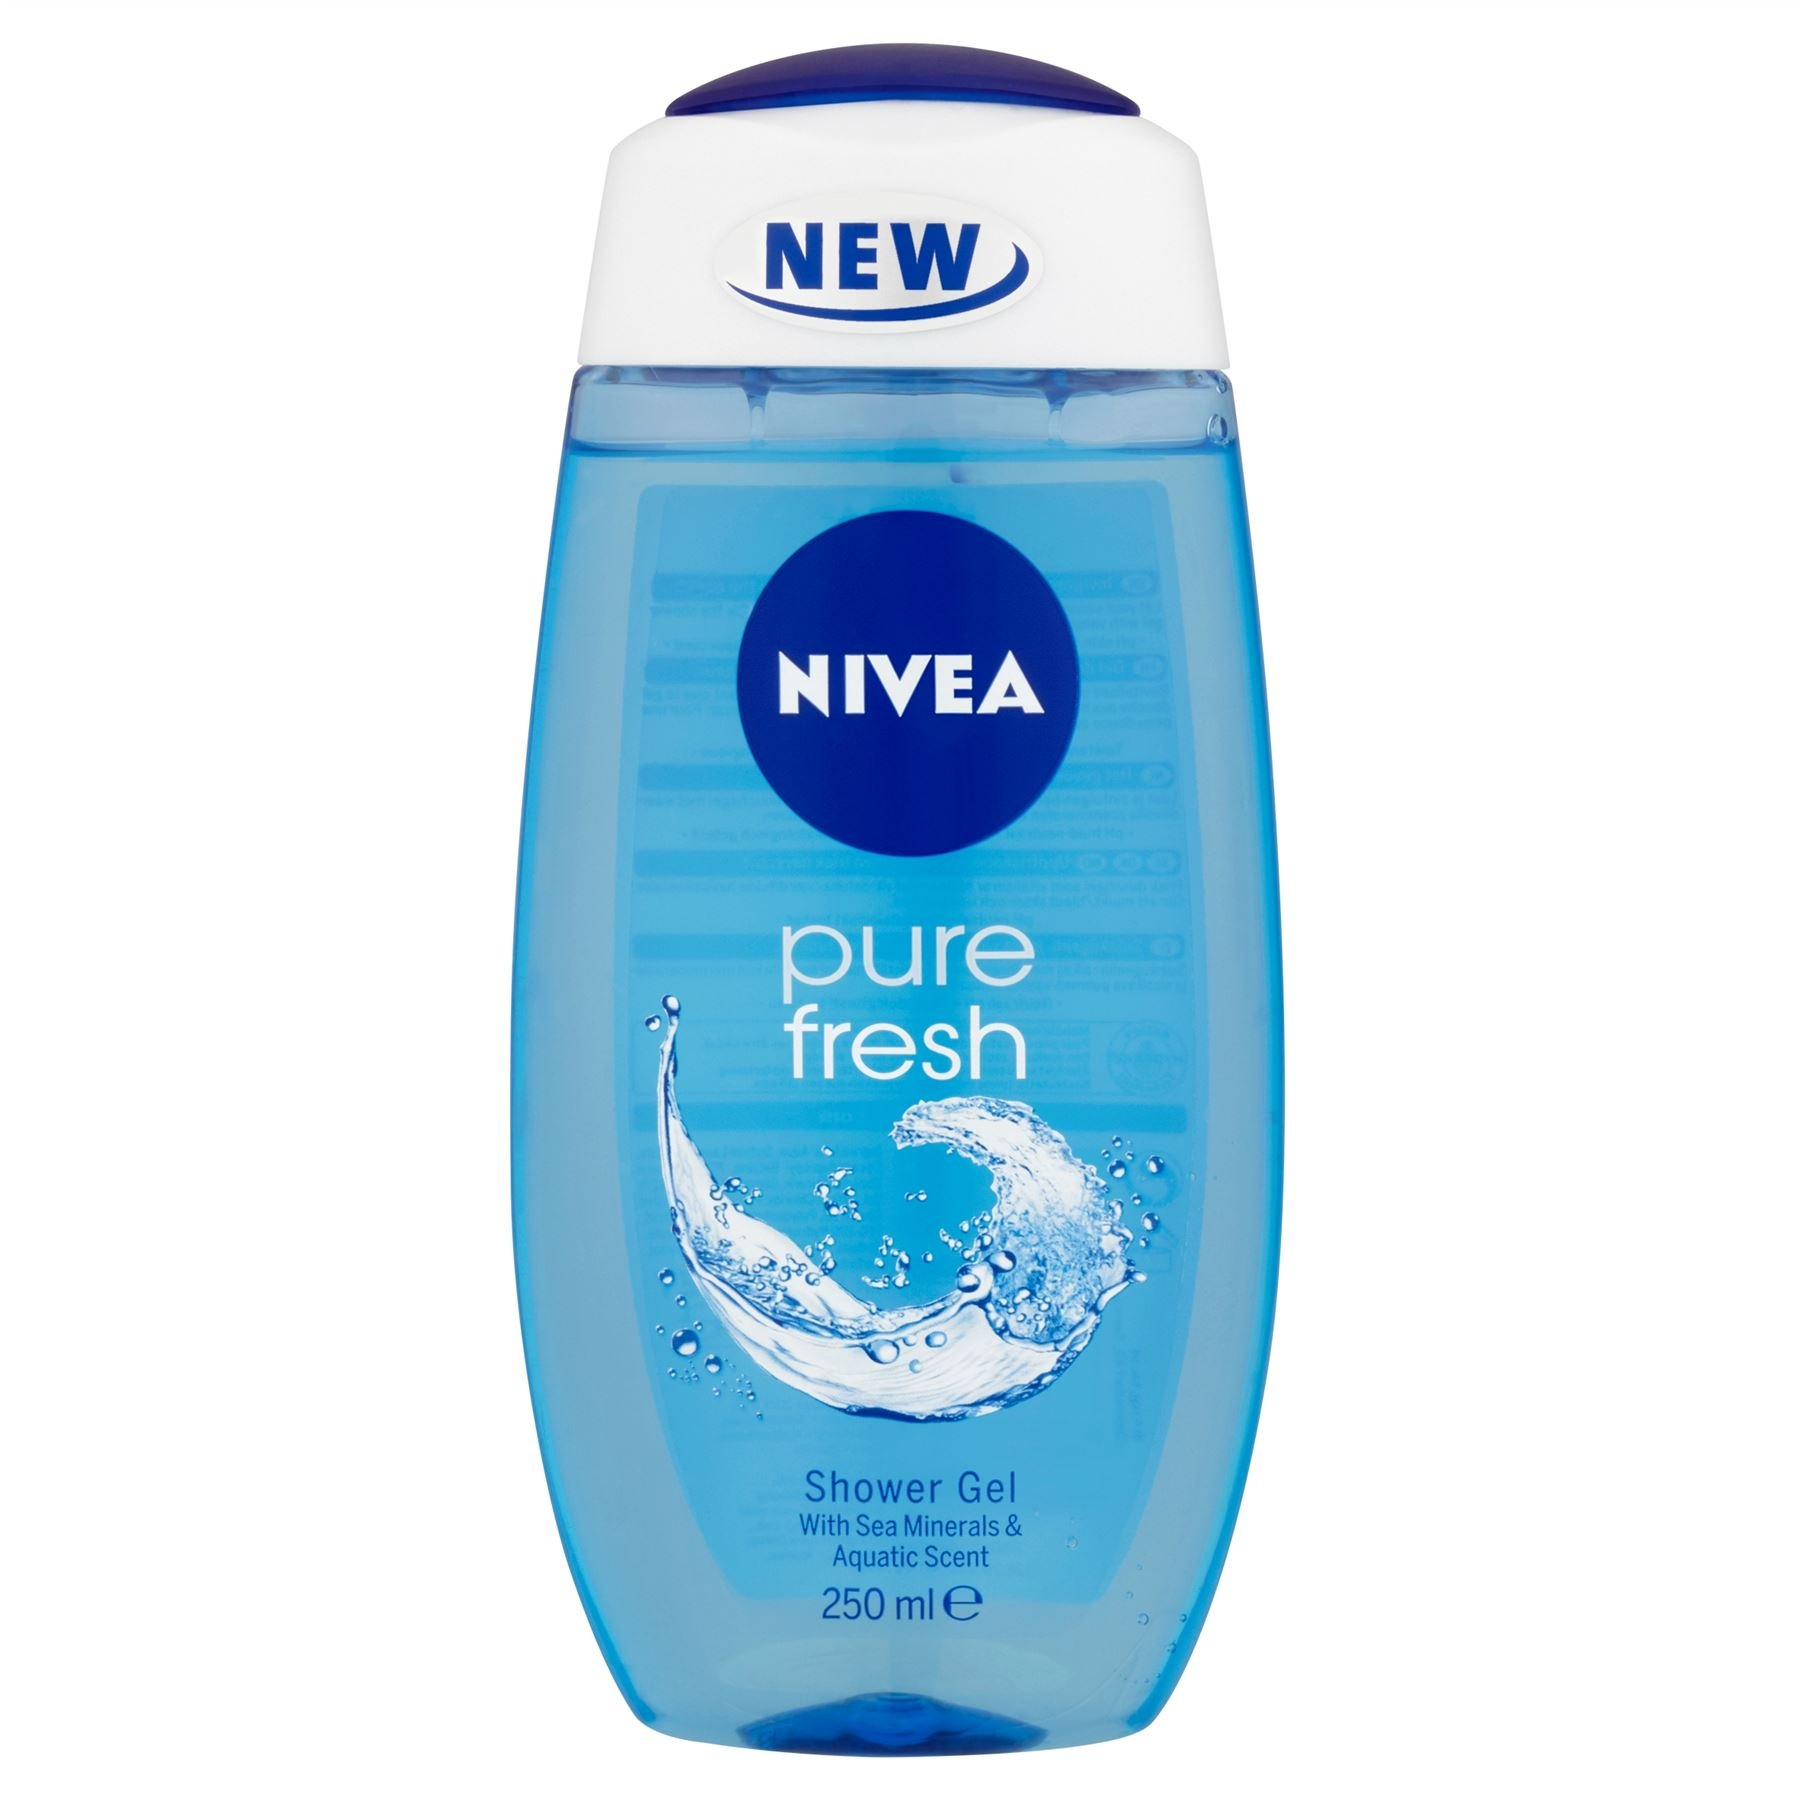 Nivea Pure Fresh Shower Gel 250ml